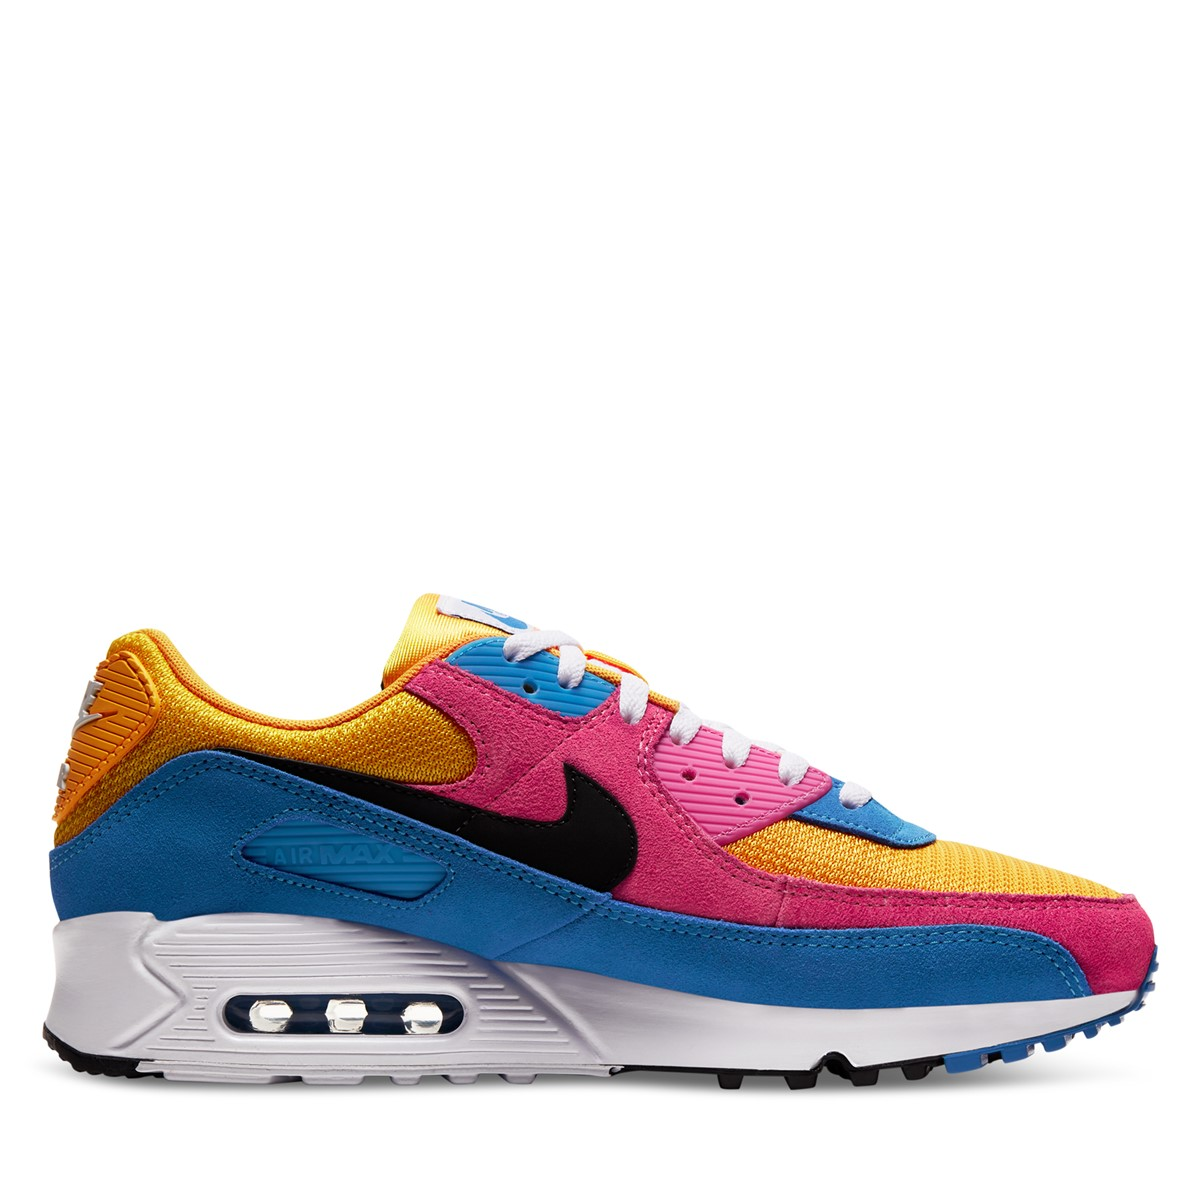 Men's Multi Air Max 90 Recraft Sneakers